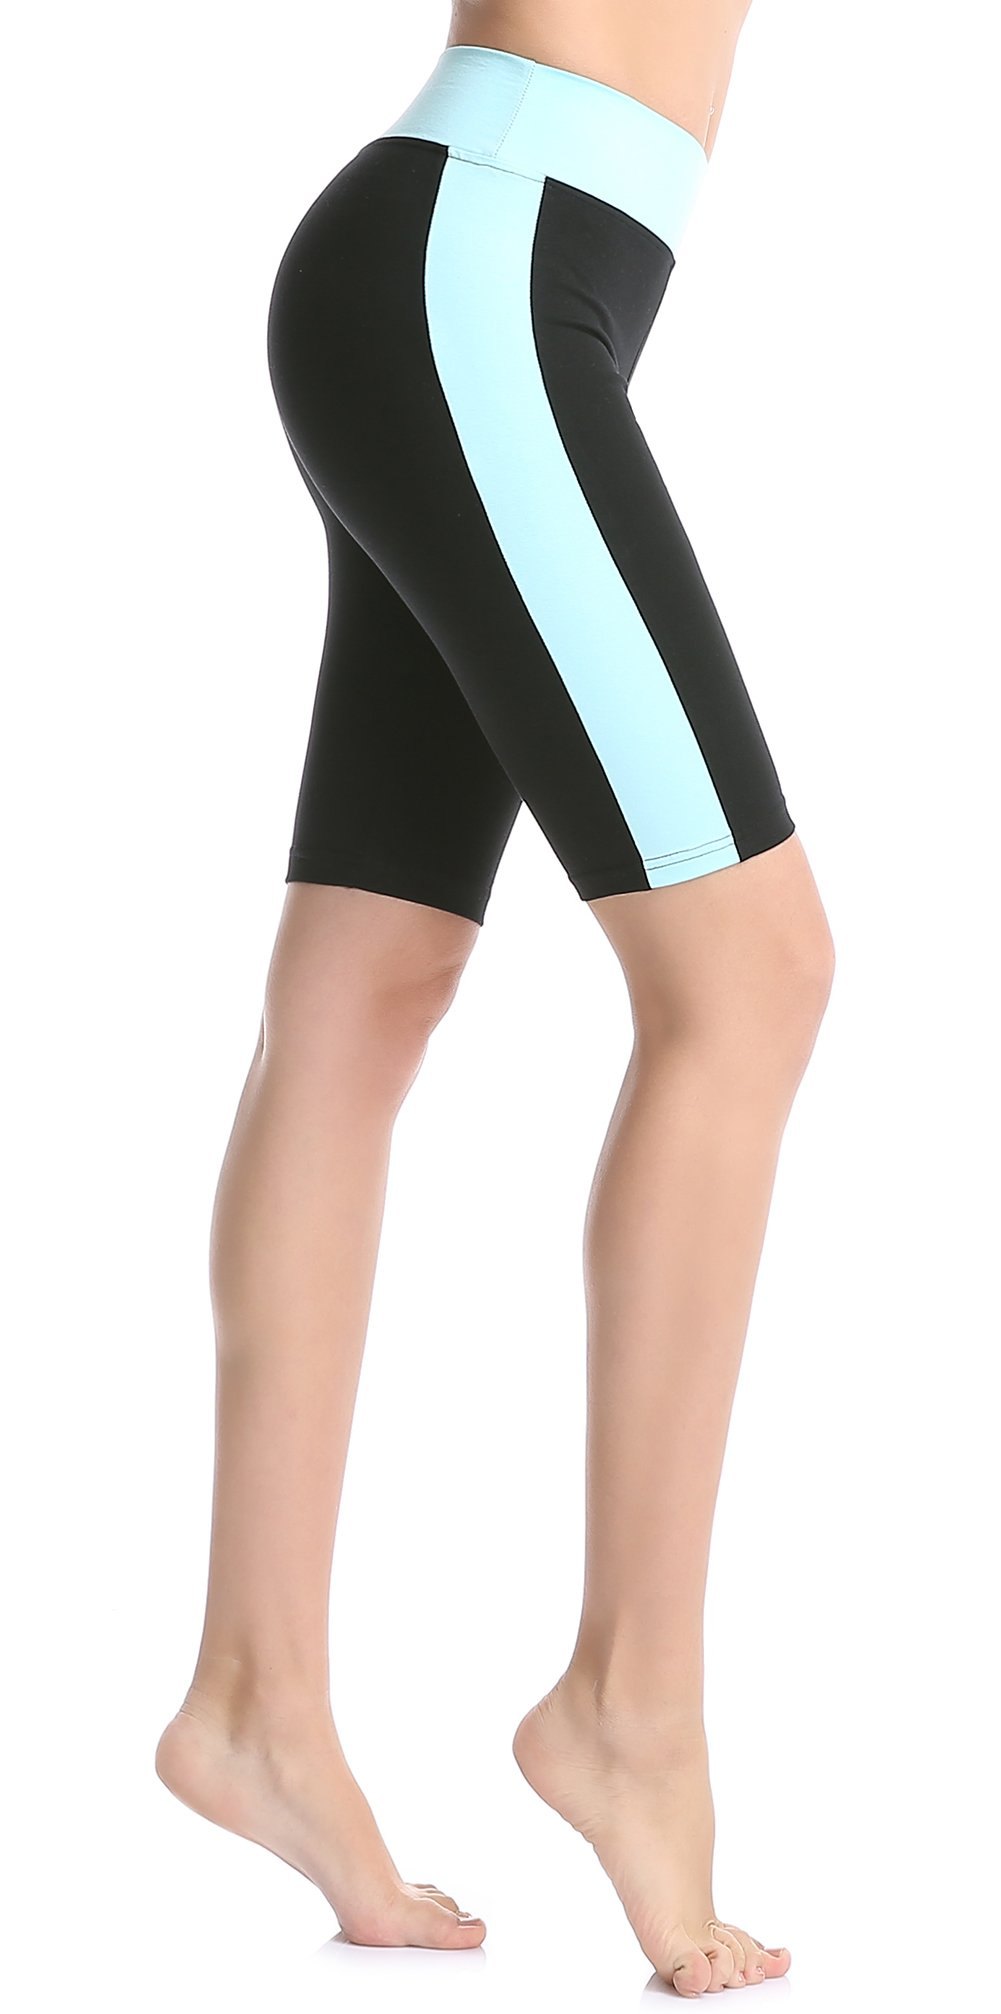 ABUSA Women's Cotton Workout Bike Yoga Shorts - Tummy Control S Sky Blue